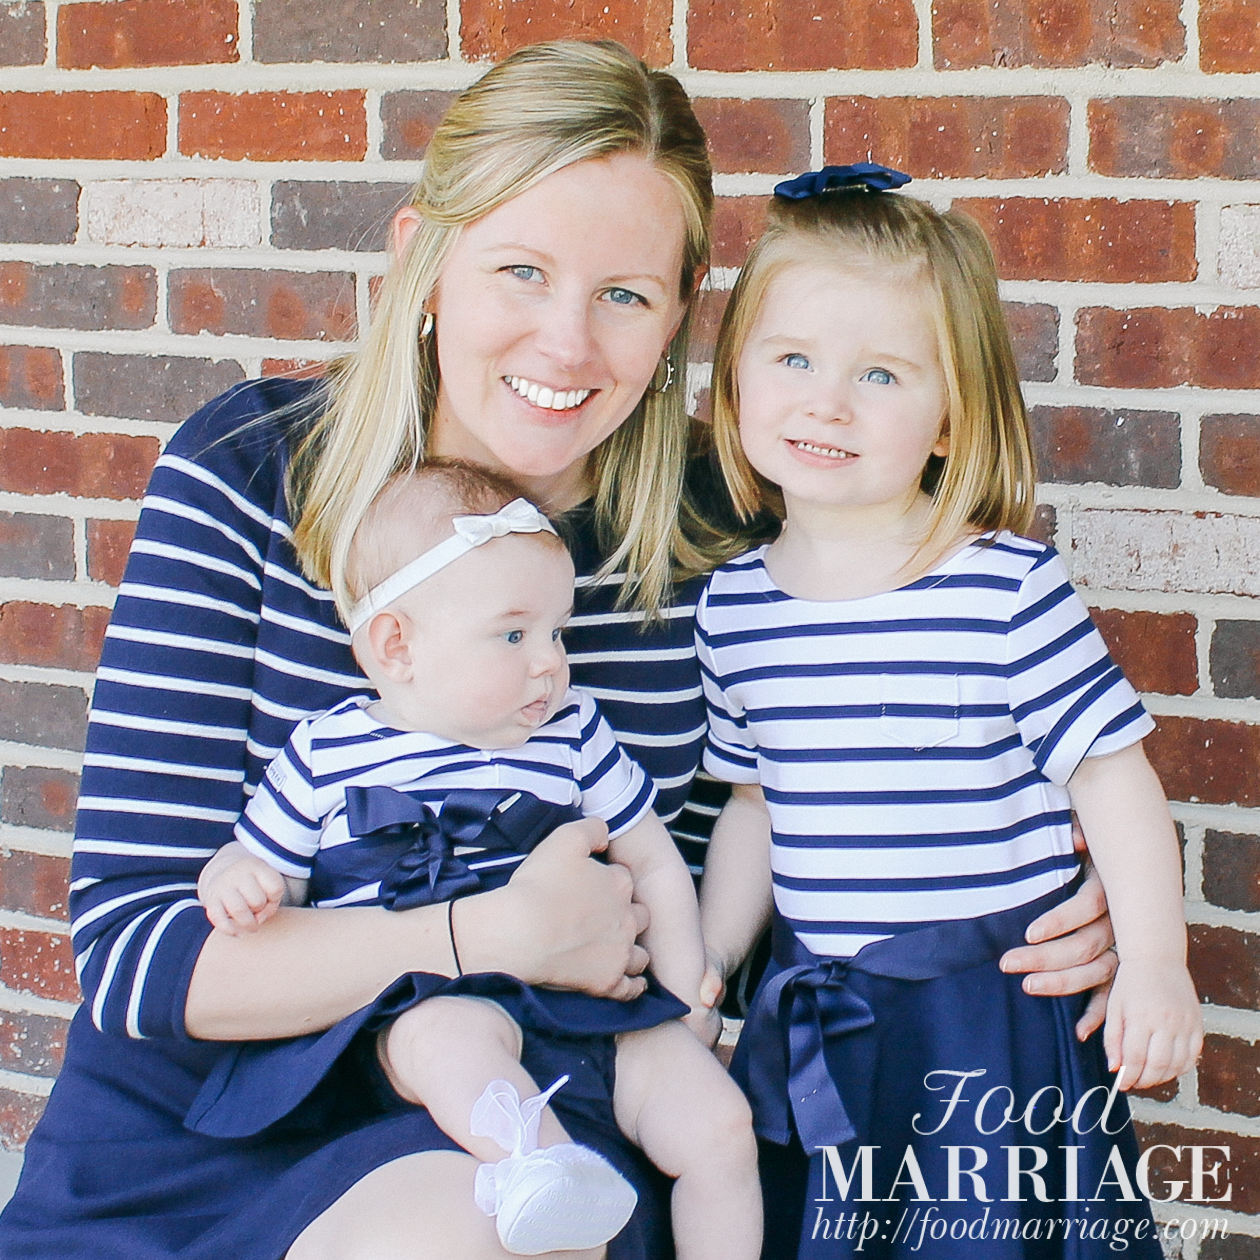 Mommy and Me Matching Outfits - Navy and White Striped Dresses from Ralph Lauren. Happy Mothers' Day!